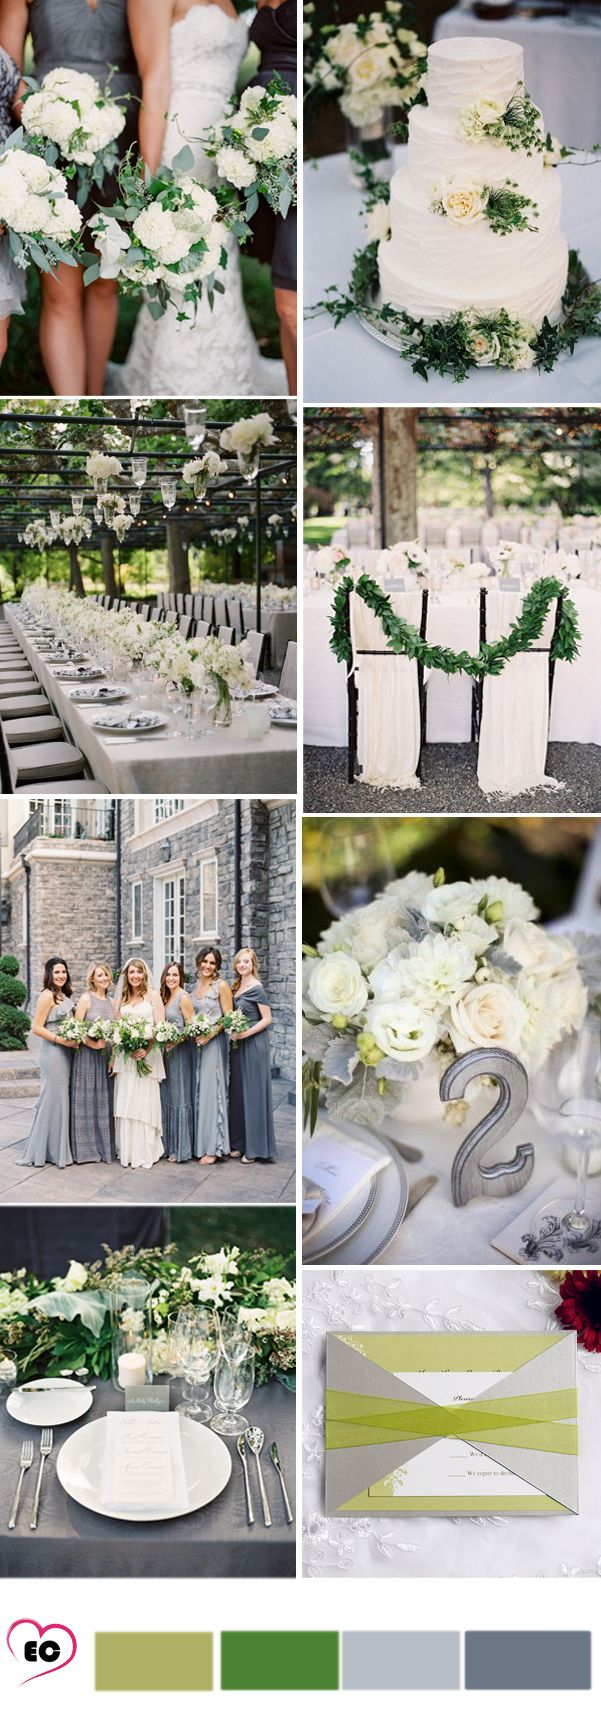 Wedding decorations yellow and gray   best If ya like it put a ring on it images on Pinterest